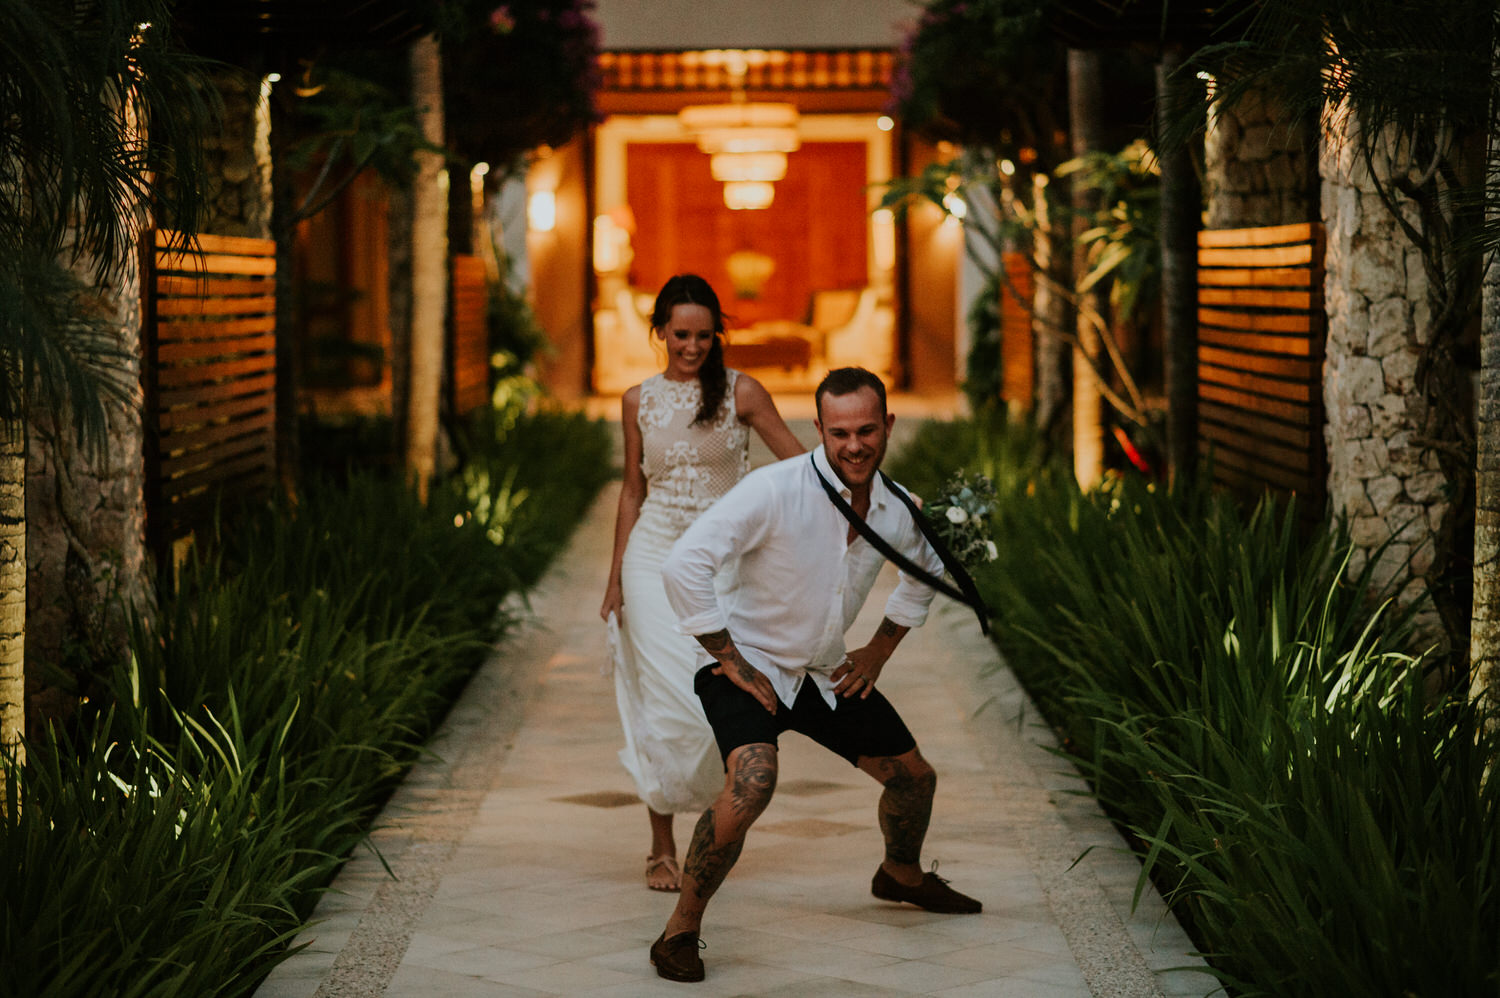 bali wedding destination - the ungasan wedding - bali wedding photographer - diktatphotography - aimee + blake wedding - 116